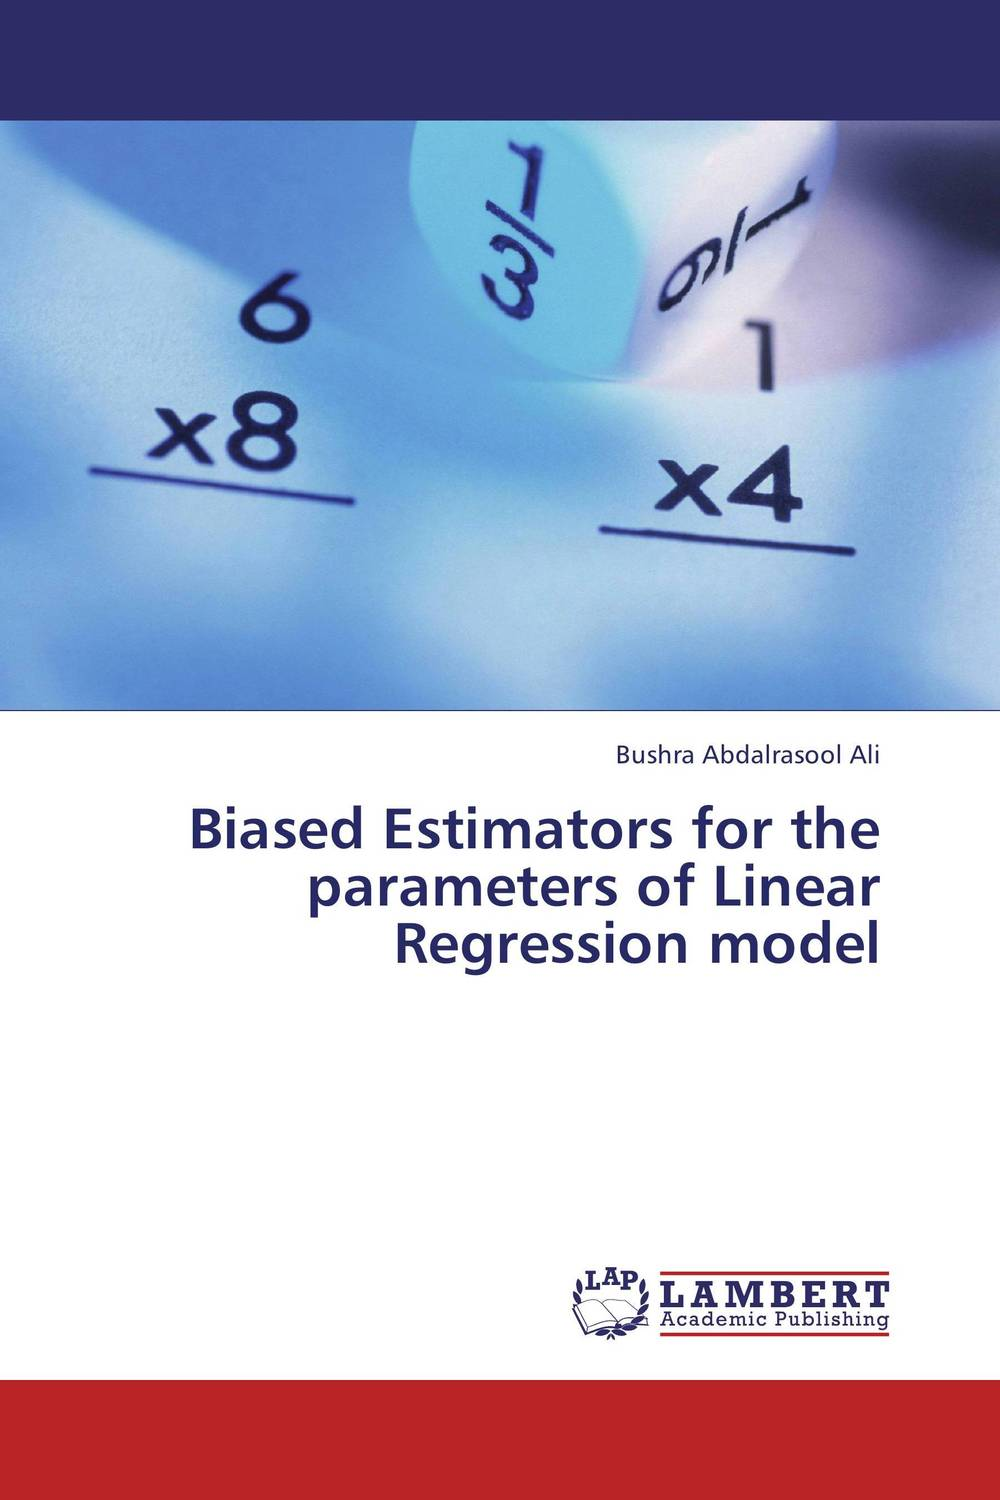 Biased Estimators for the parameters of Linear Regression model linear regression models with heteroscedastic errors